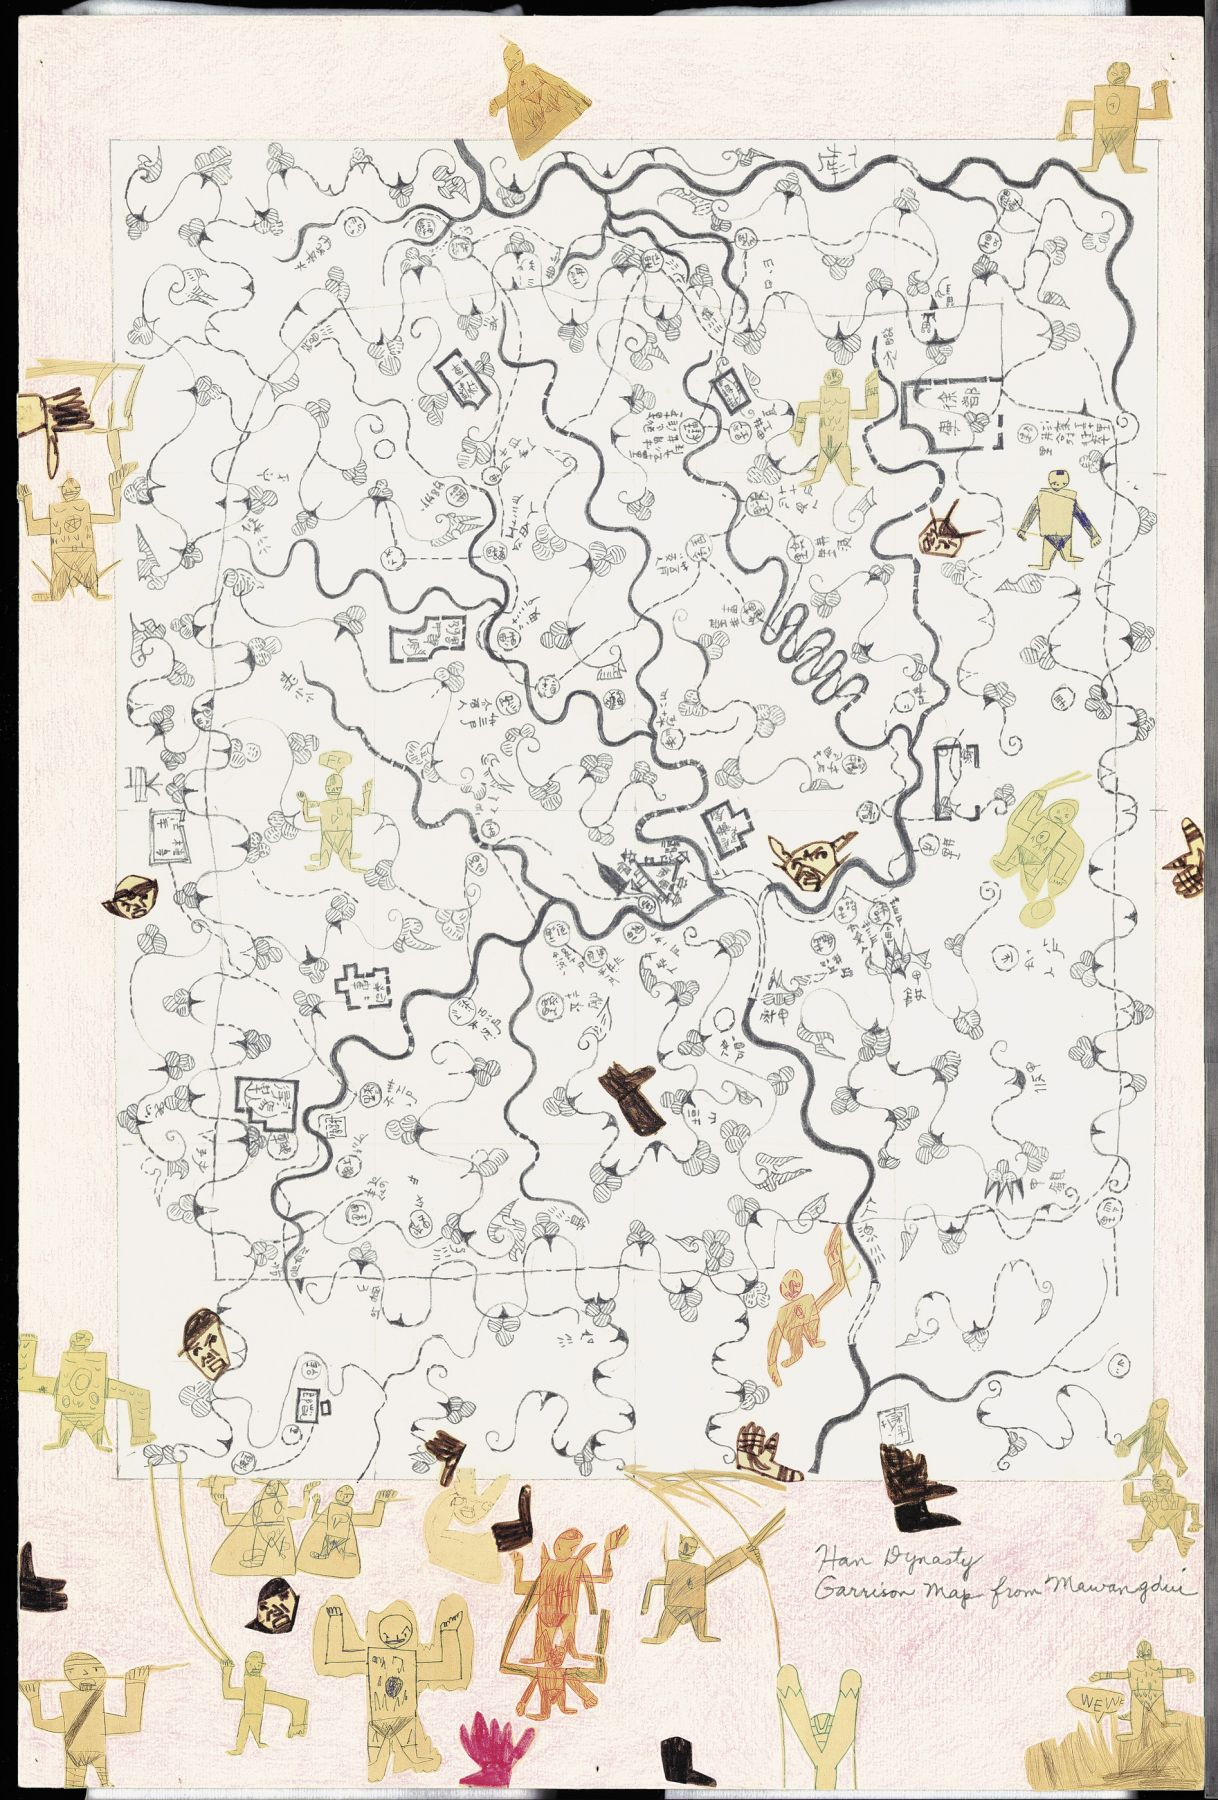 Boys' Art #13: Han Dynasty Garrison Map, 2001-02, Mixed media on paper